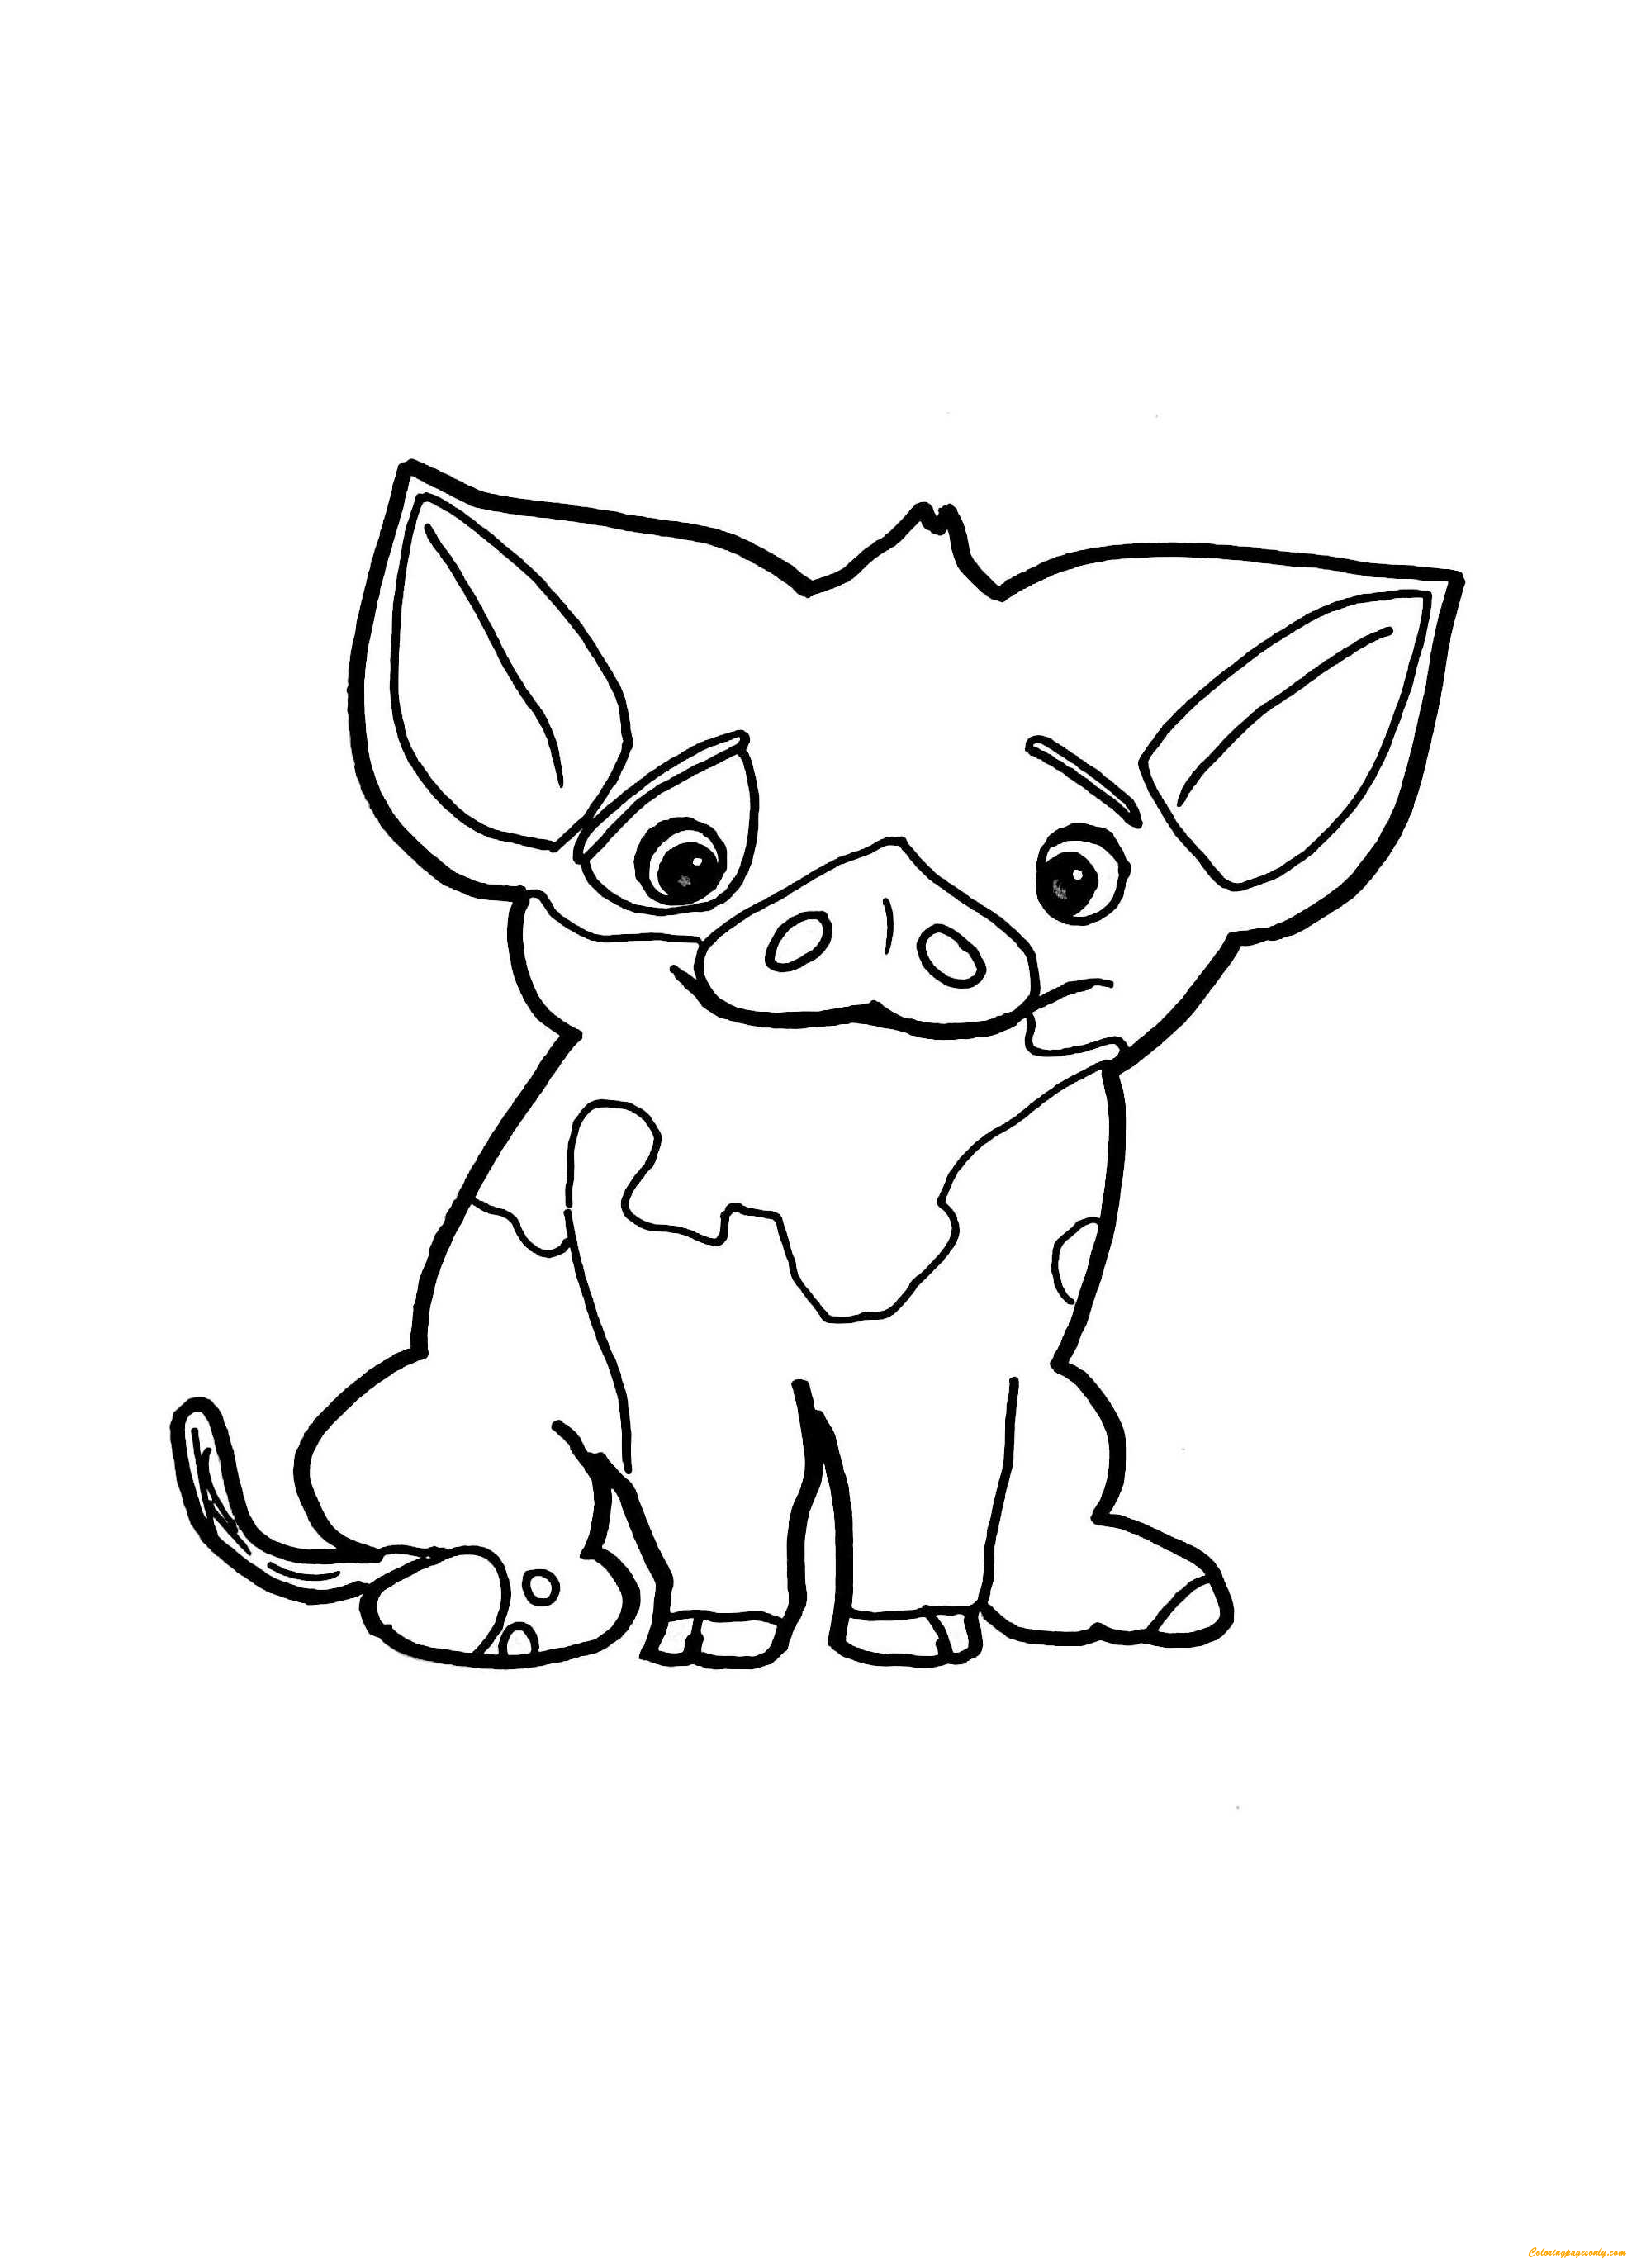 coloring pictures of pigs coloring pages for kids by mr adron free printable baby pictures of pigs coloring